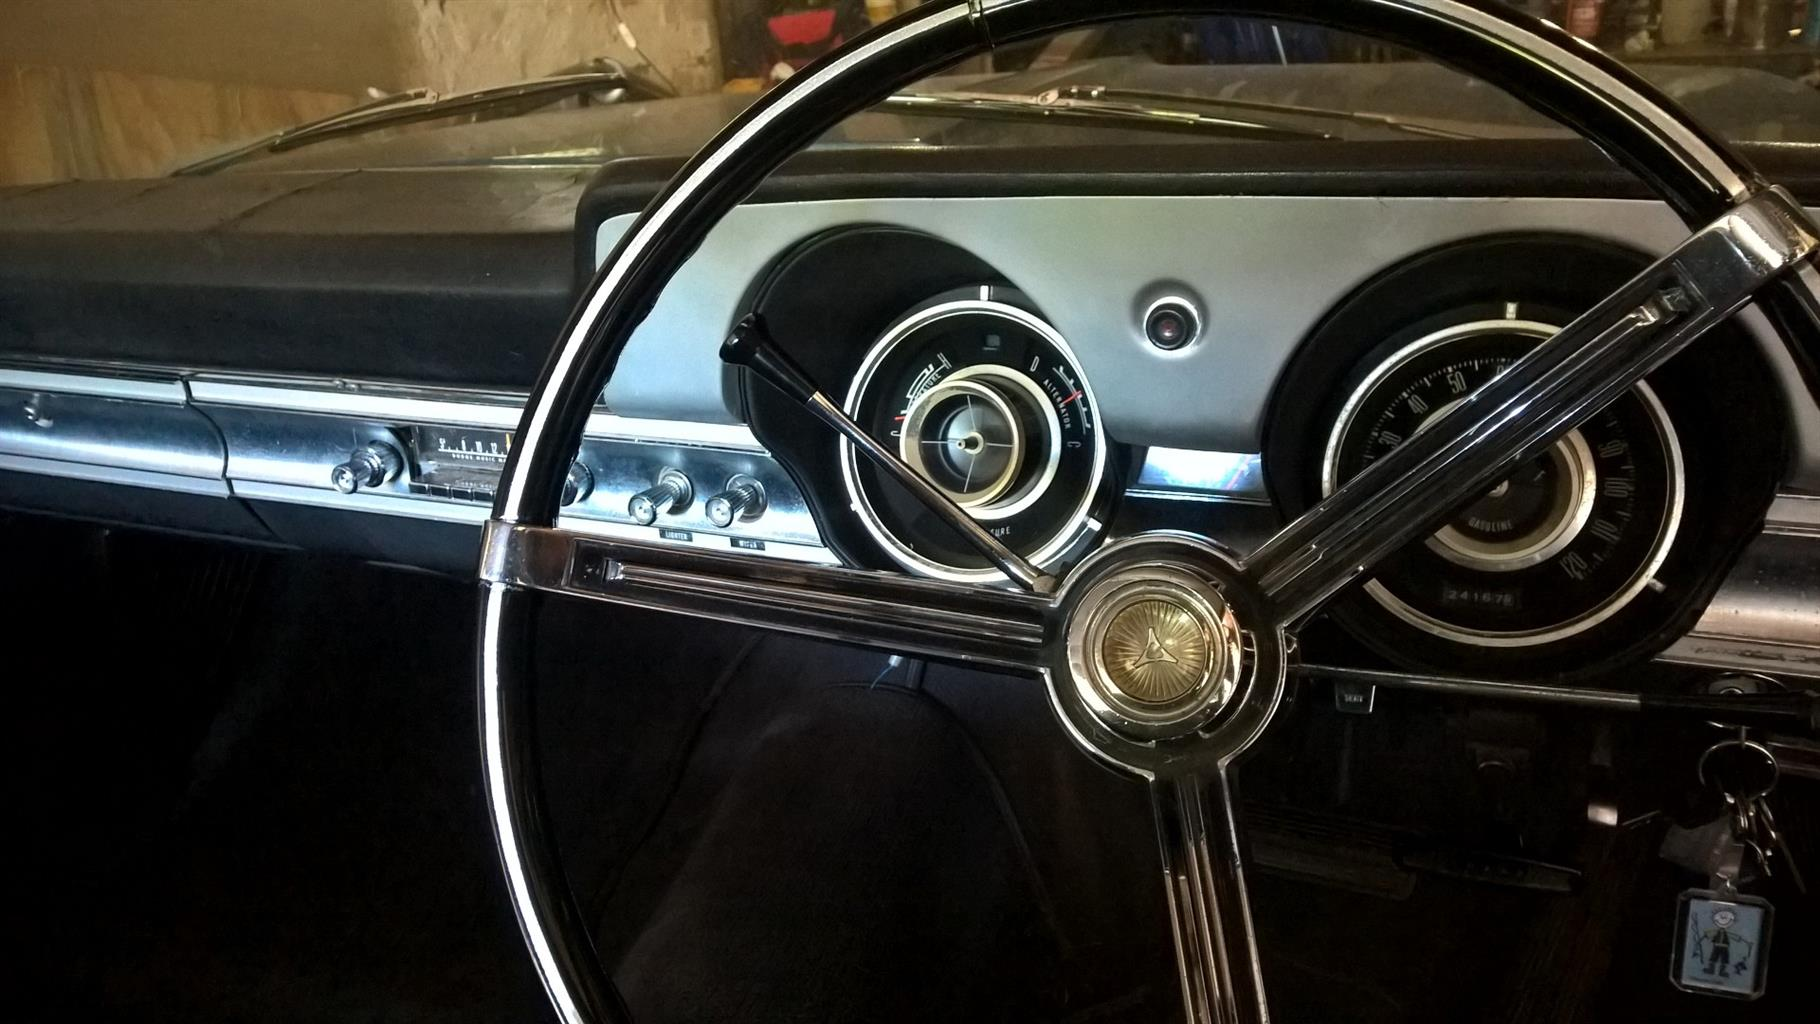 Head Turning 1967 Dodge Monaco For Sale or Trade | Junk Mail